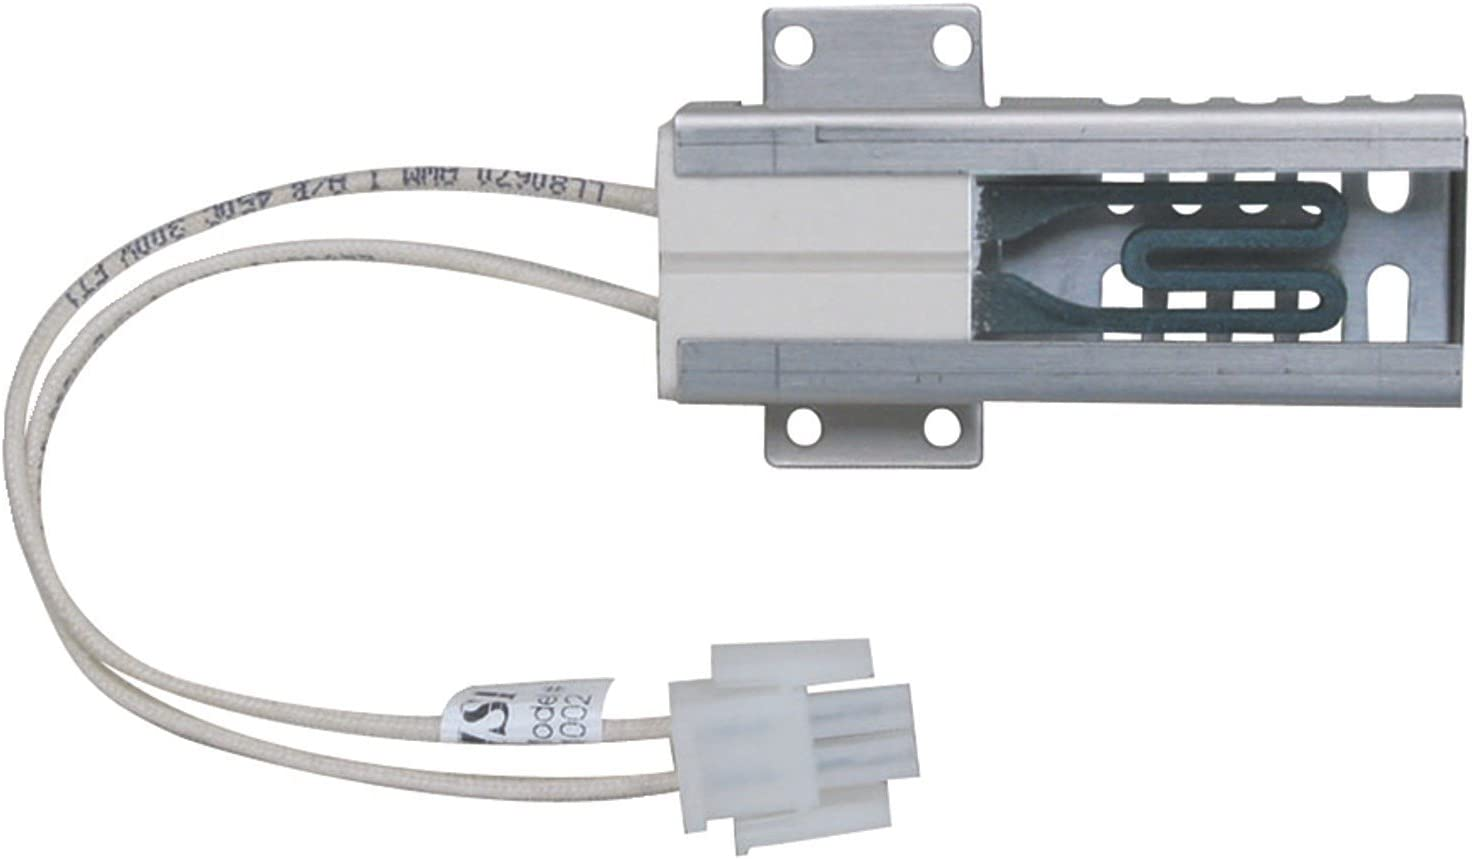 Compatible Oven Igniter for General Electric JGBS17PEK2WW, General Electric JGBP35CEJ3CC, Hotpoint RGB508PET2WH, Kenmore / Sears 36272321003 Gas Range